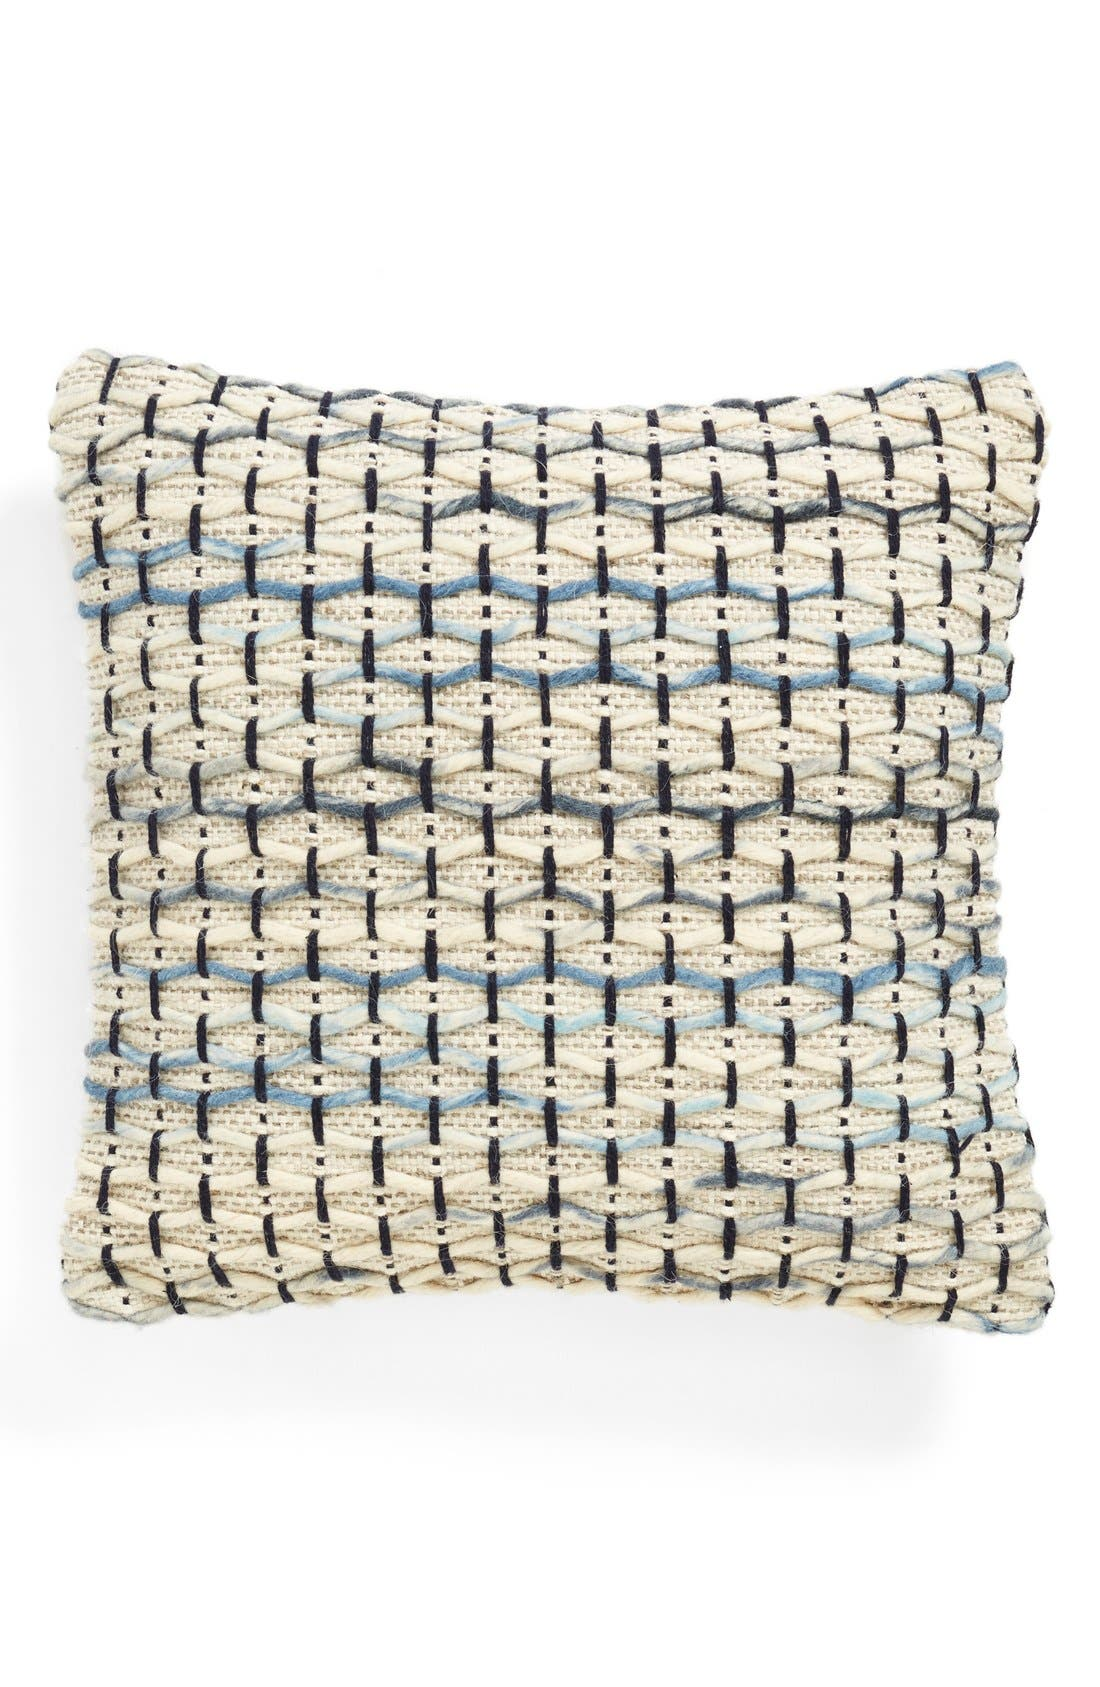 Main Image - Brentwood Originals 'Knitted Lines' Jute Accent Pillow